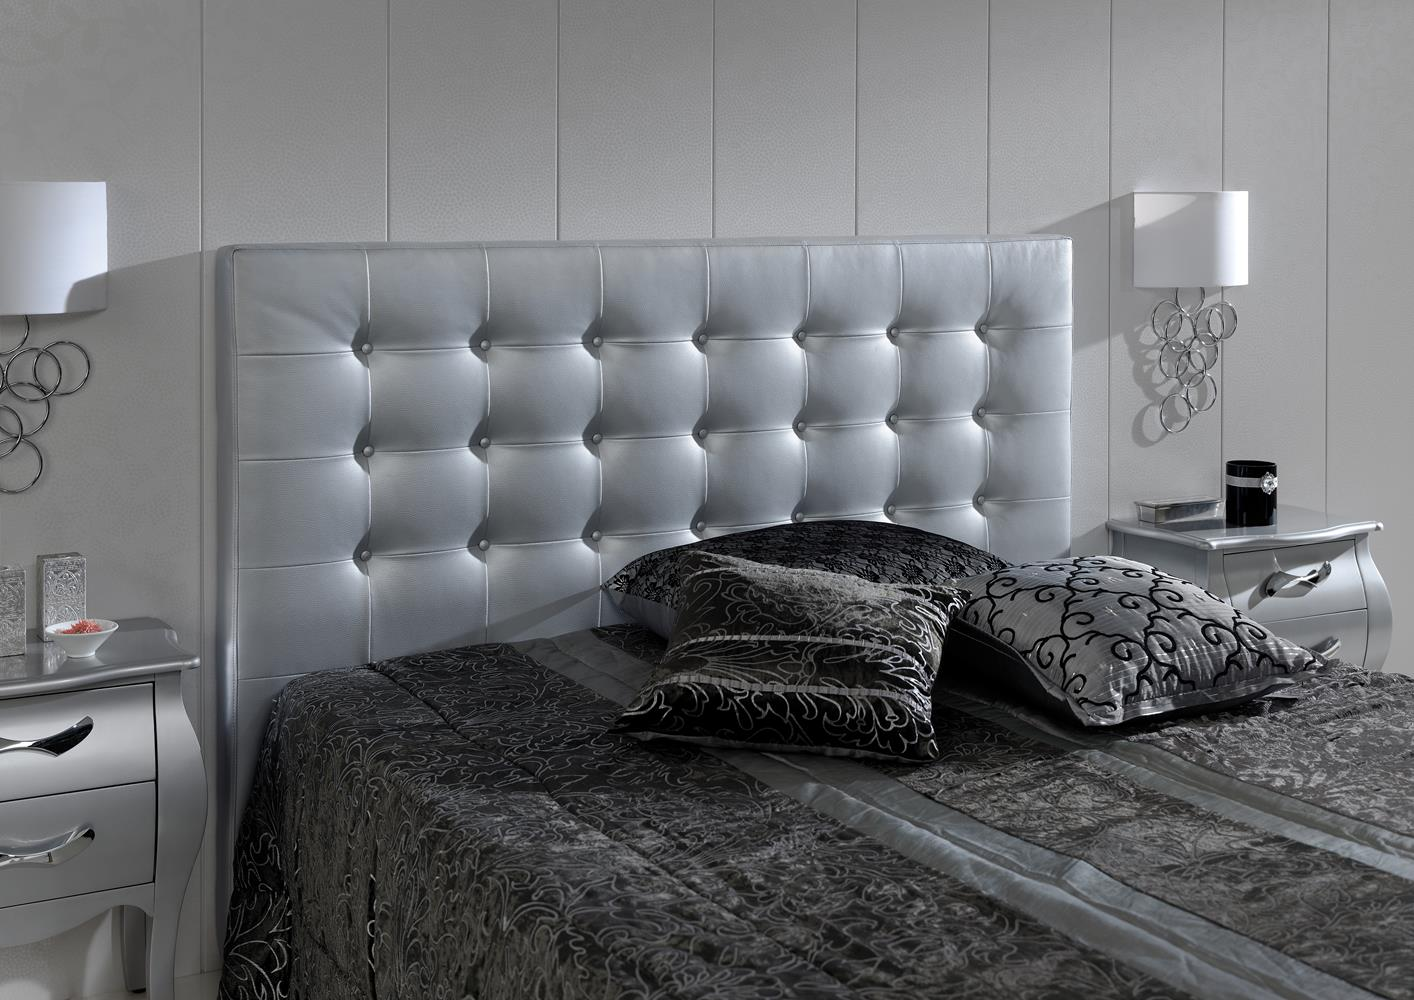 acheter votre t te de lit contemporain capitonn en pvc argent chez simeuble. Black Bedroom Furniture Sets. Home Design Ideas